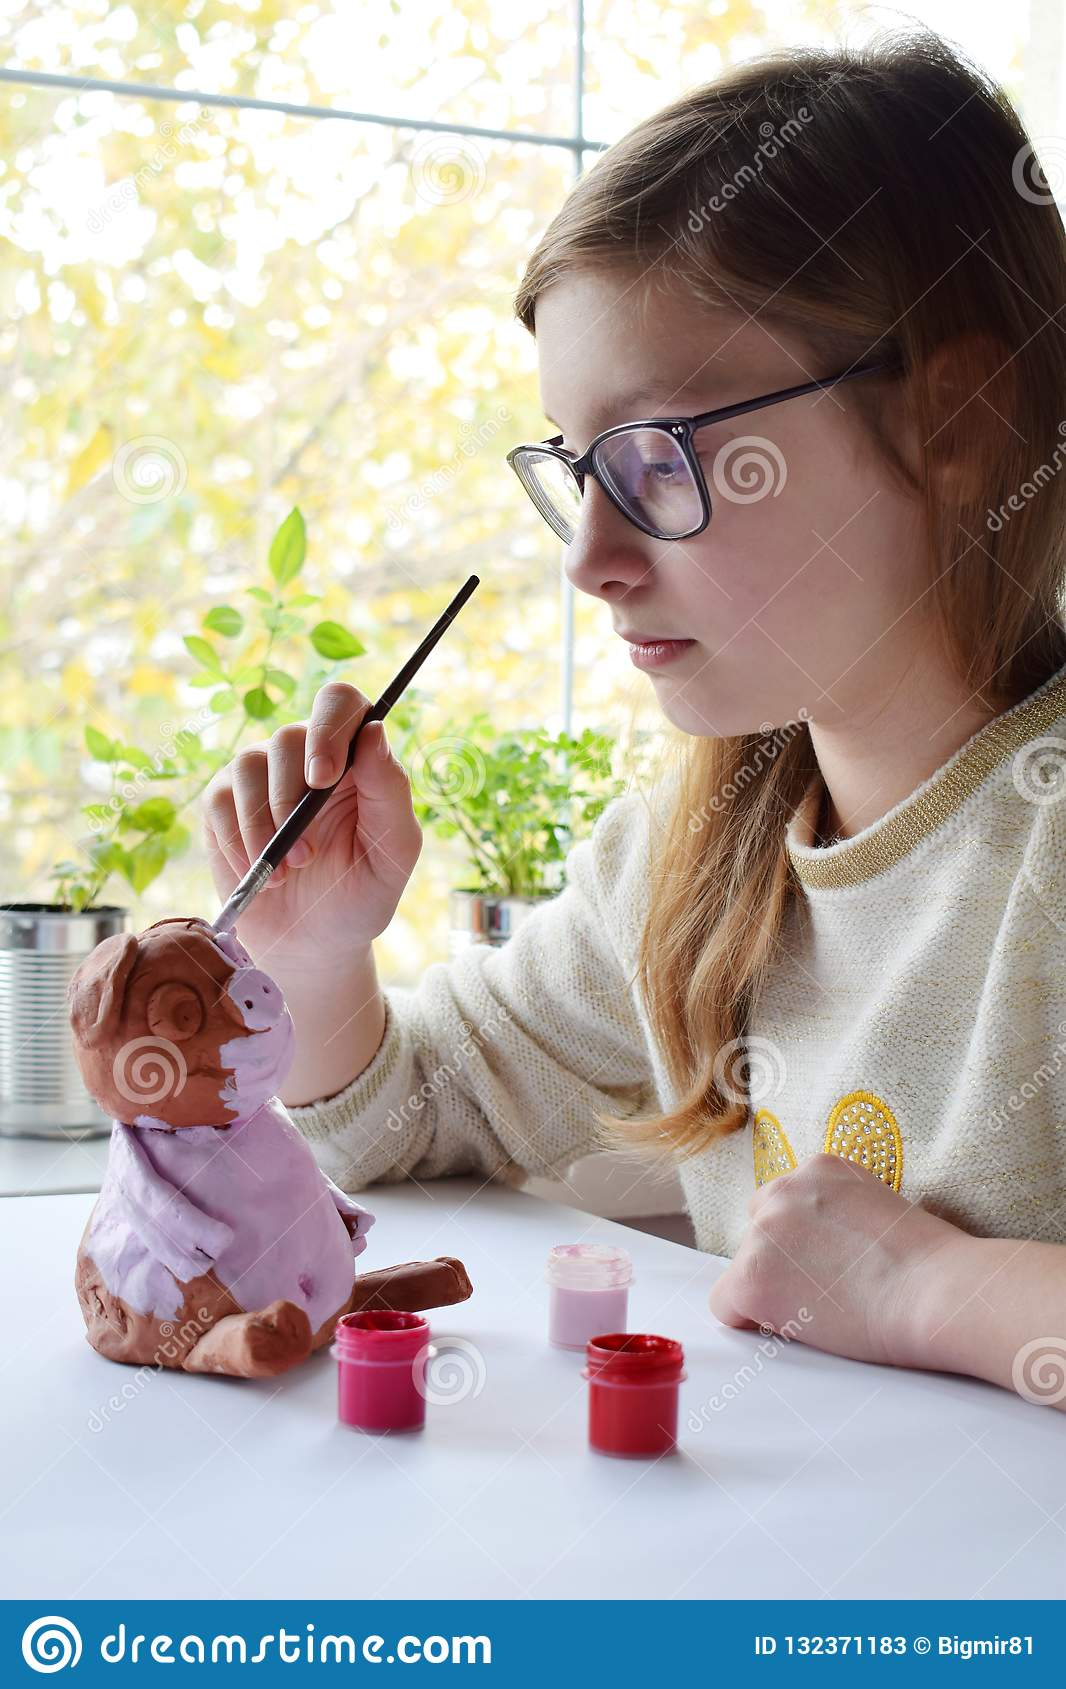 Young teenage girl makes toy, paints clay pig with gouache. Creative leisure for children. Supporting creativity, learning by